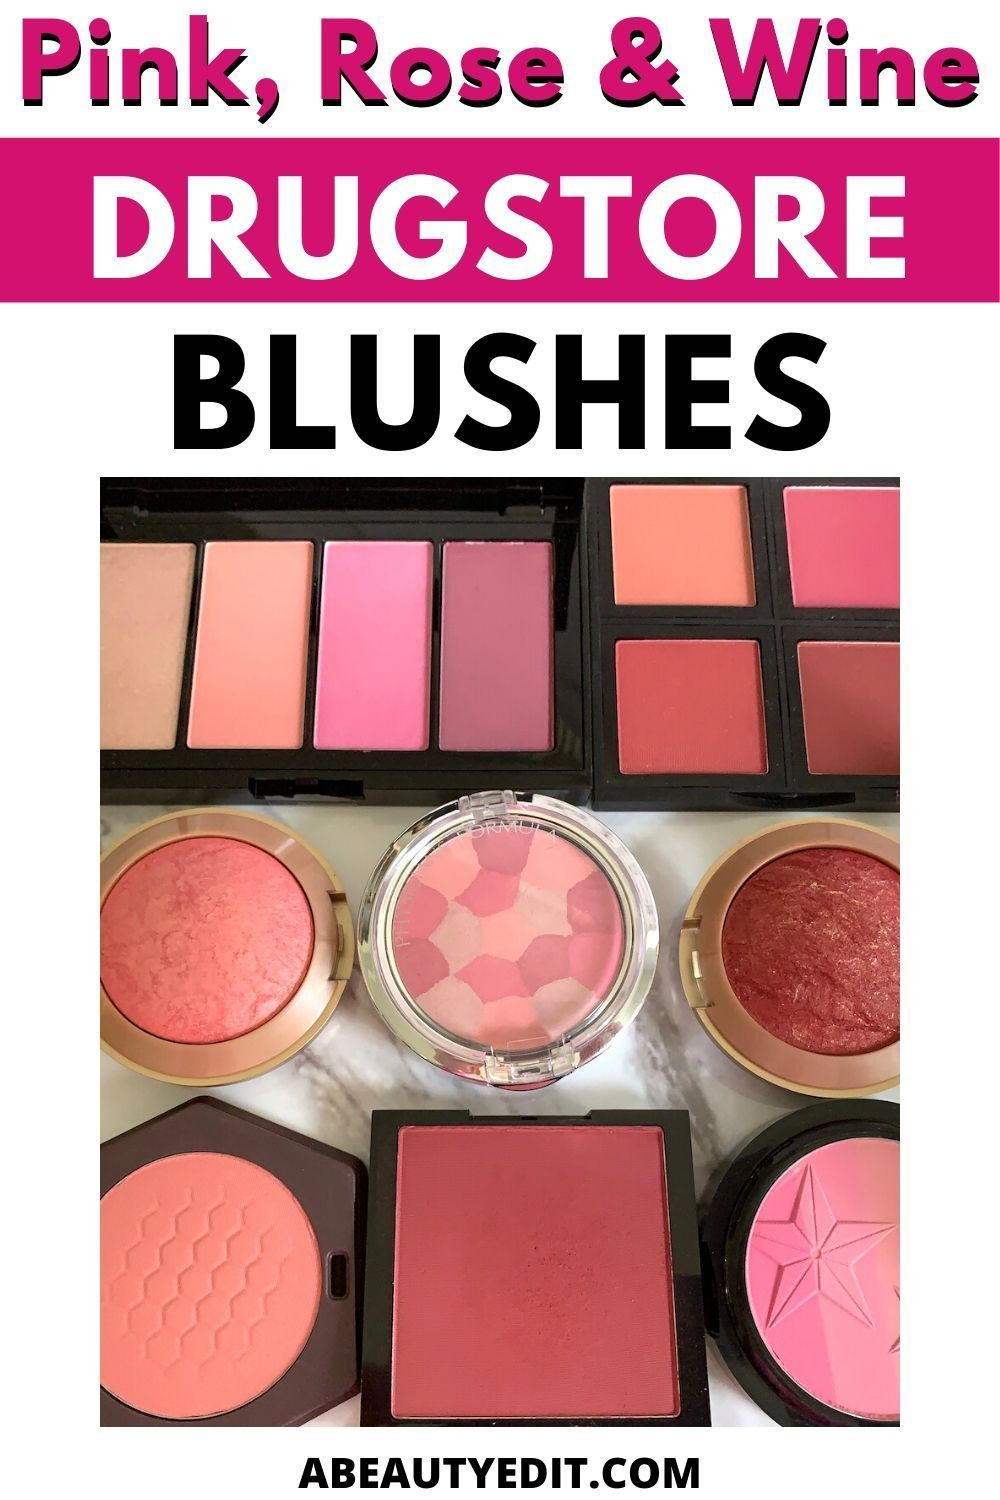 Pink Rose And Wine Drugstore Blushes A Beauty Edit In 2020 Drugstore Blush Blush Hard Candy Makeup